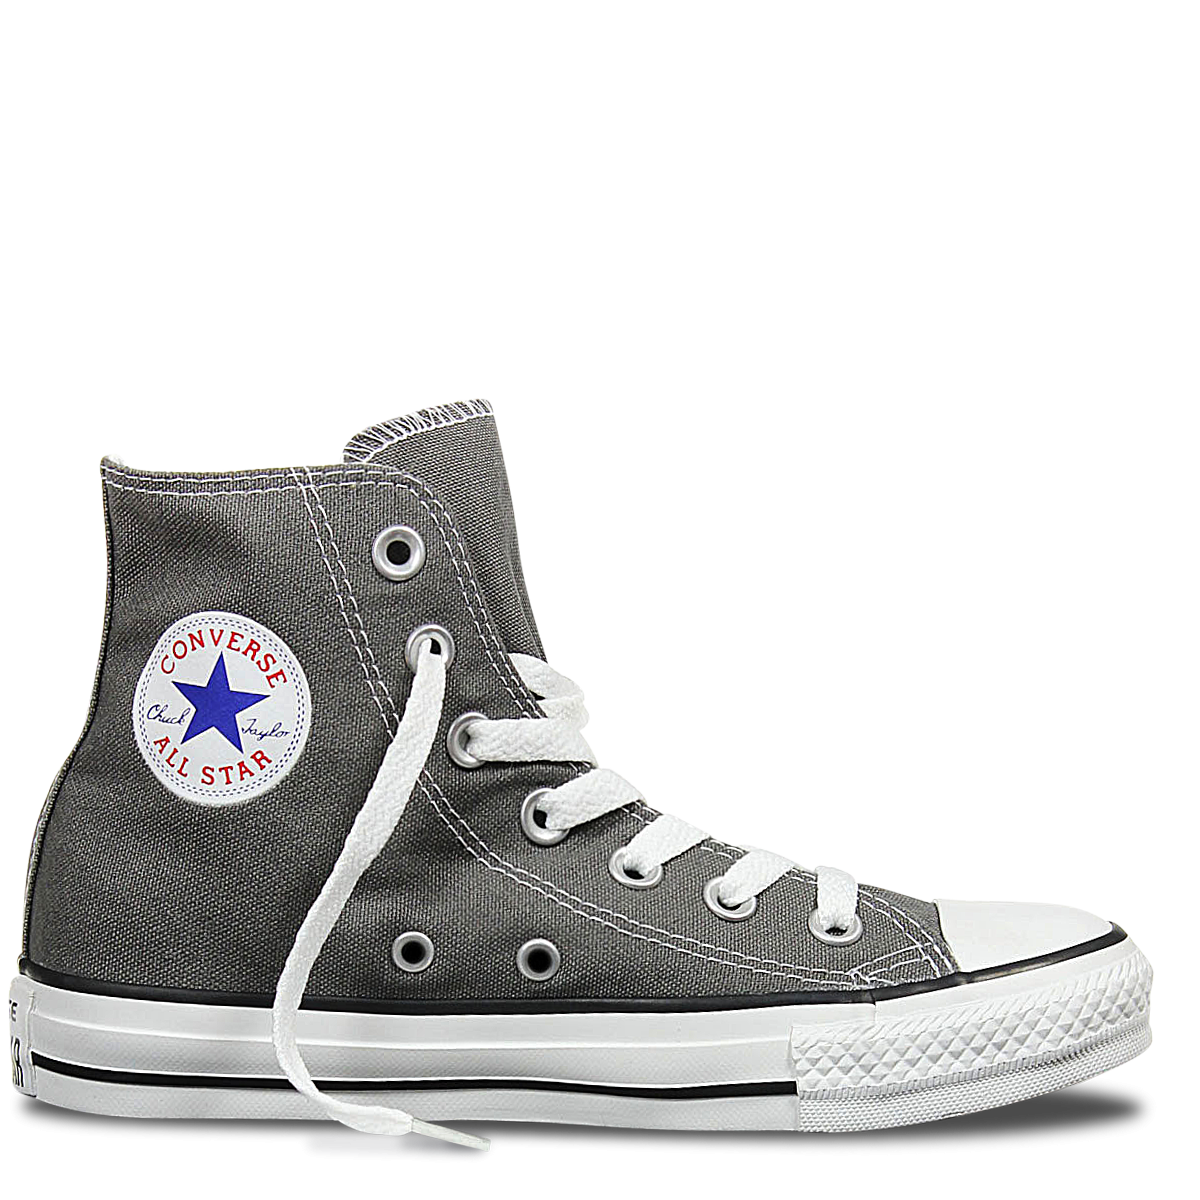 First retail trinidad. Converse transparent half svg library